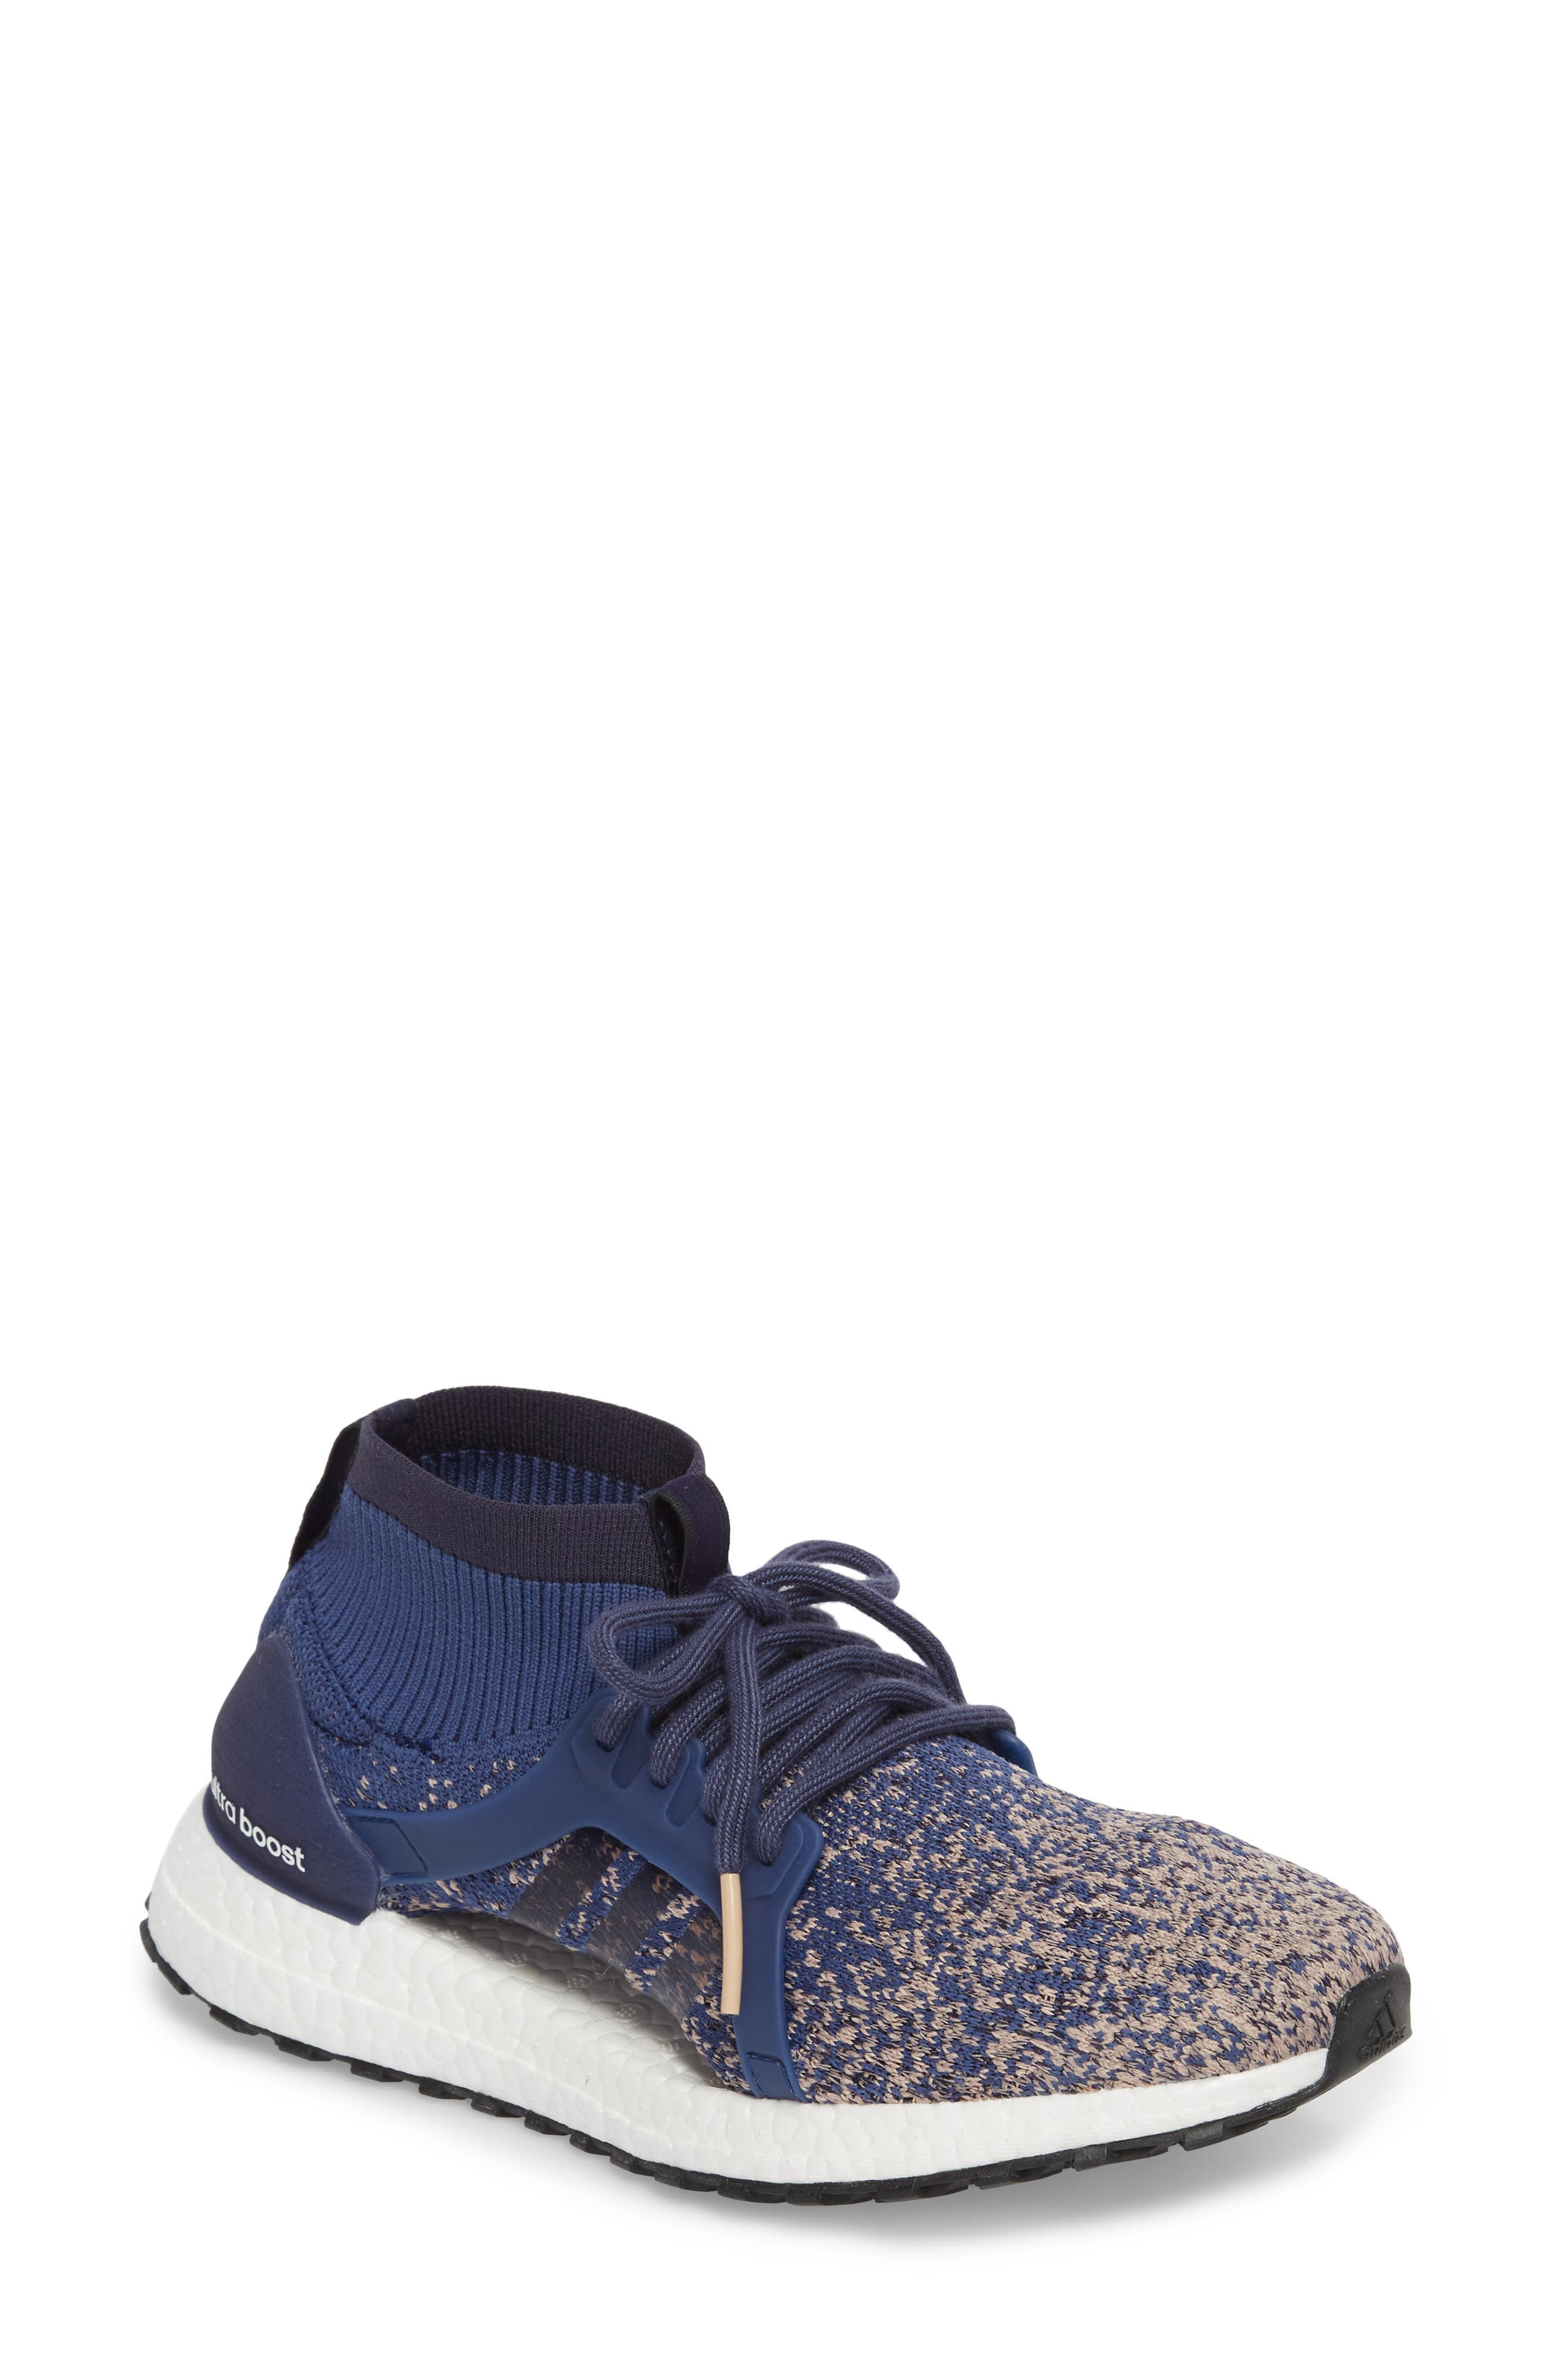 UltraBoost X All Terrain Water Resistant Running Shoe,                             Main thumbnail 1, color,                             Noble Indigo/ Noble Indigo